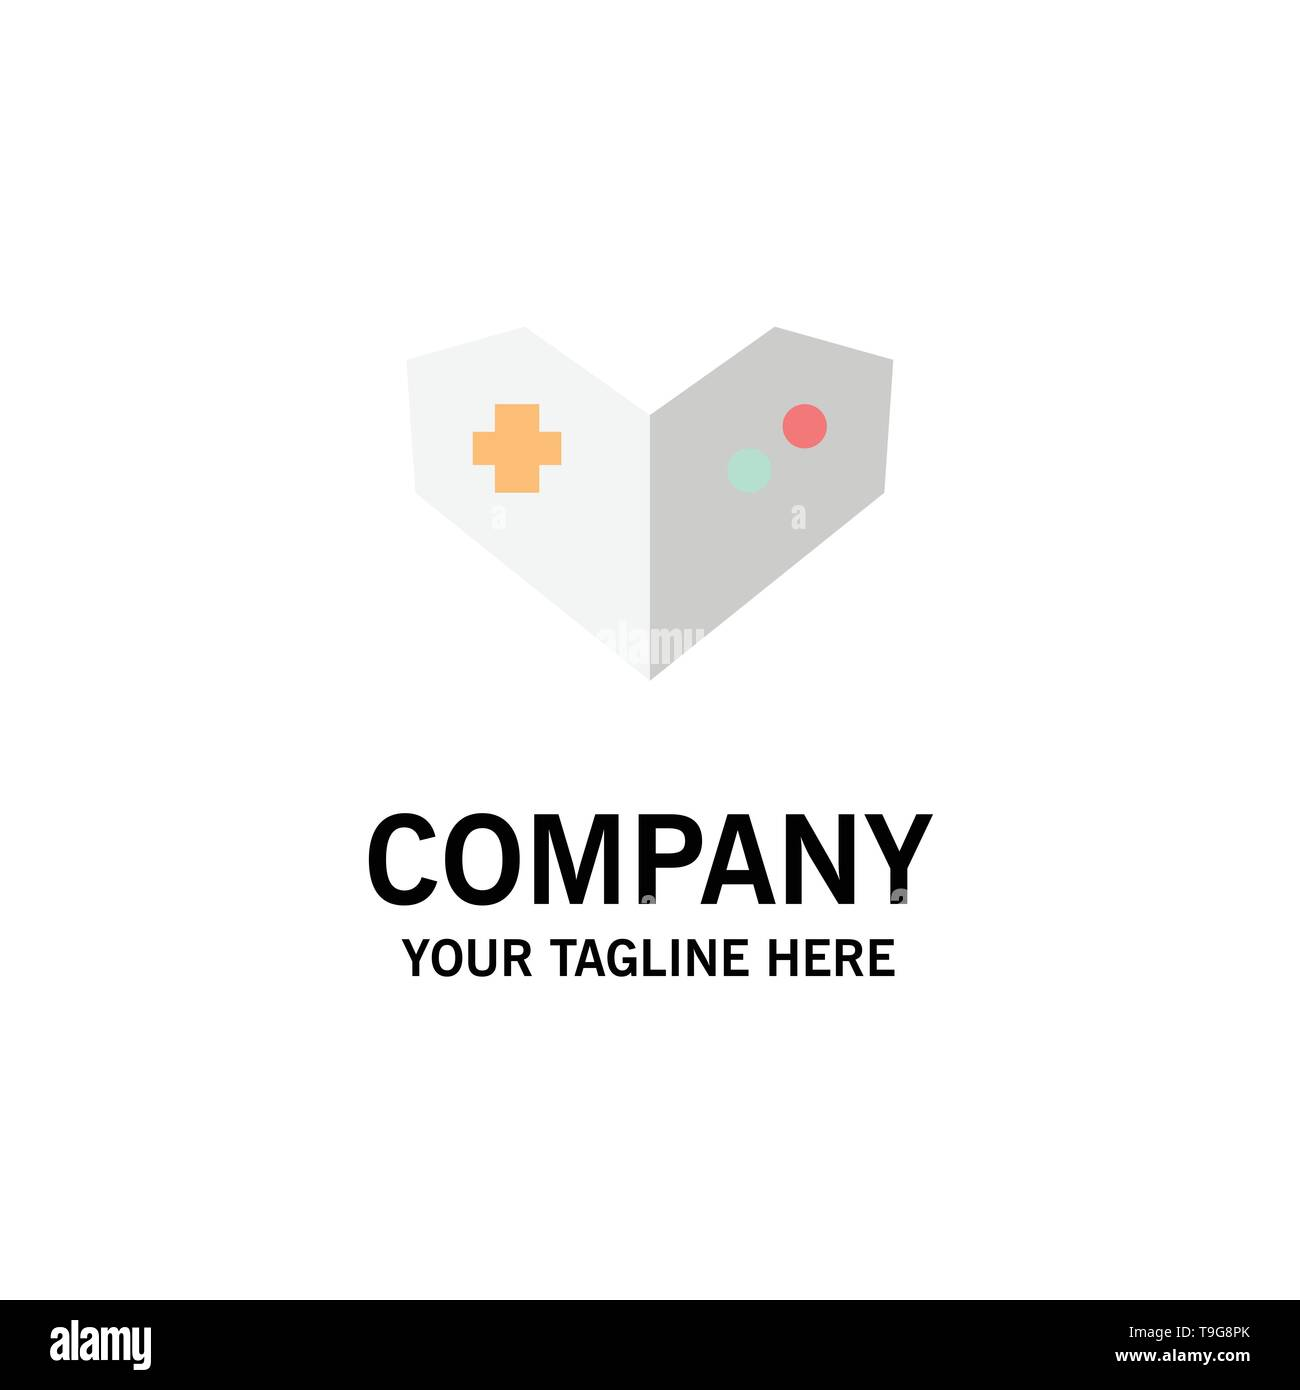 Gamepad, Videogame, PlayStation Business Logo Template. Flat Color - Stock Image